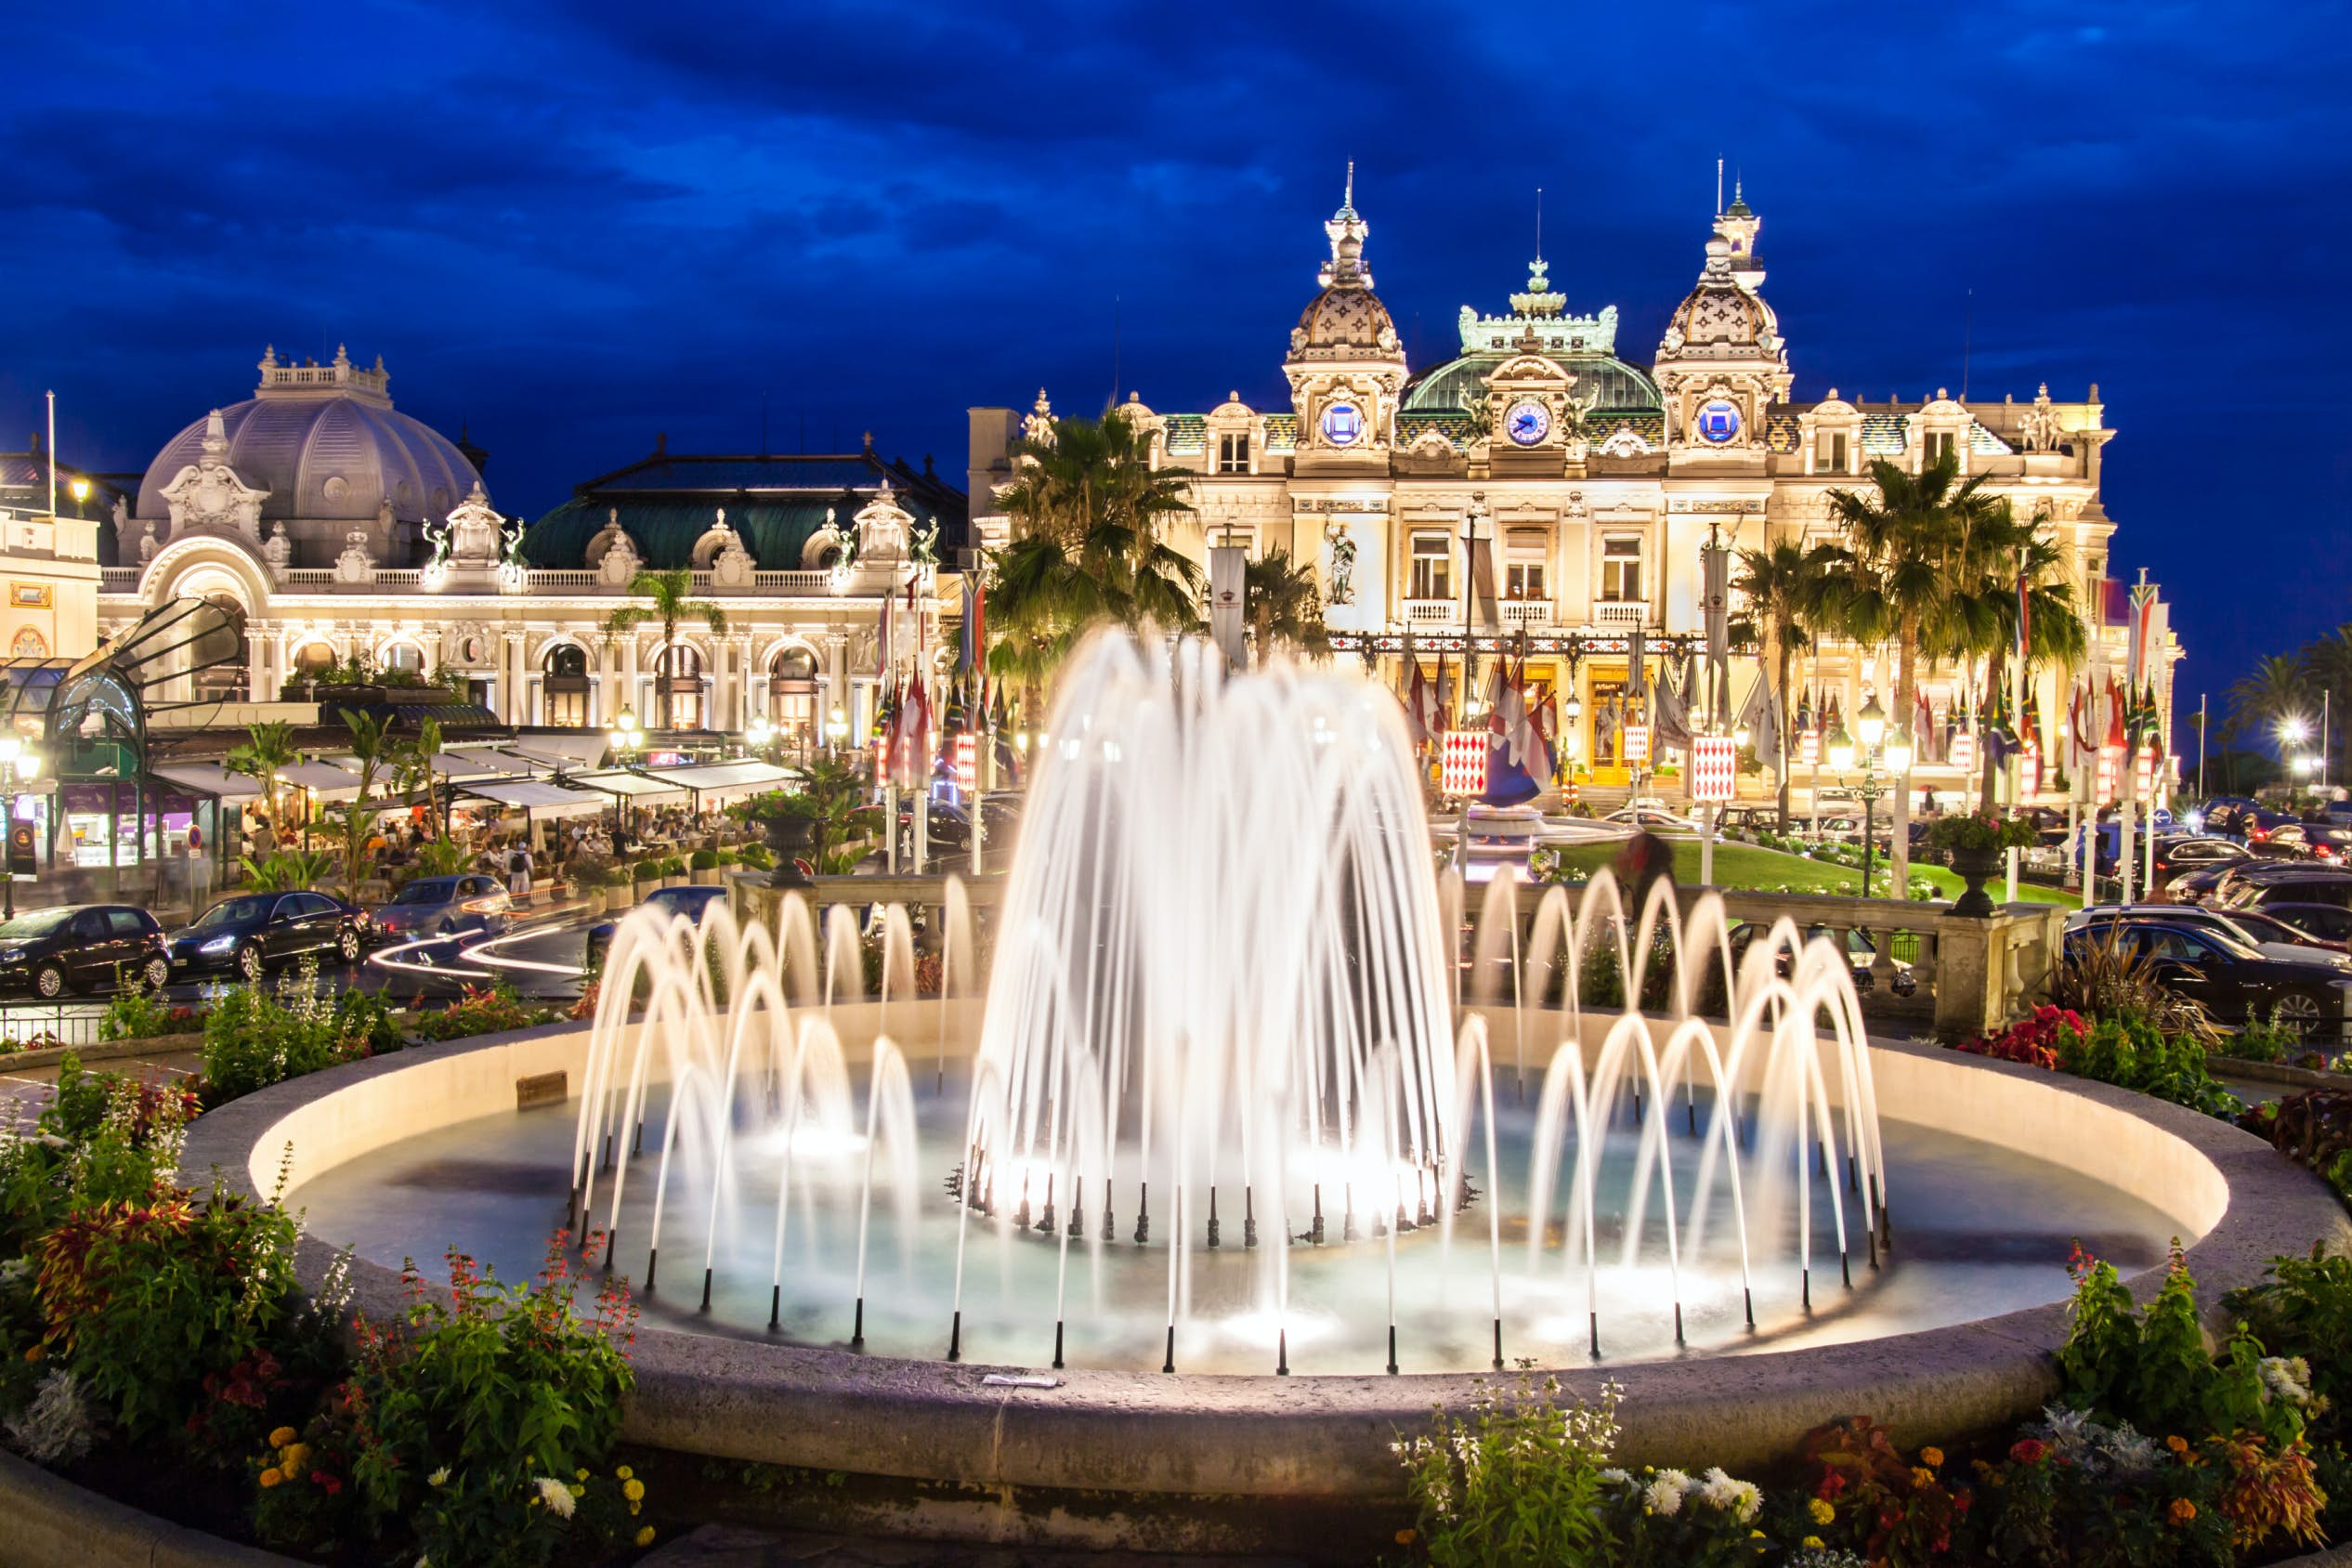 Casino de Monte Carlo | Monaco Attractions - Lonely Planet